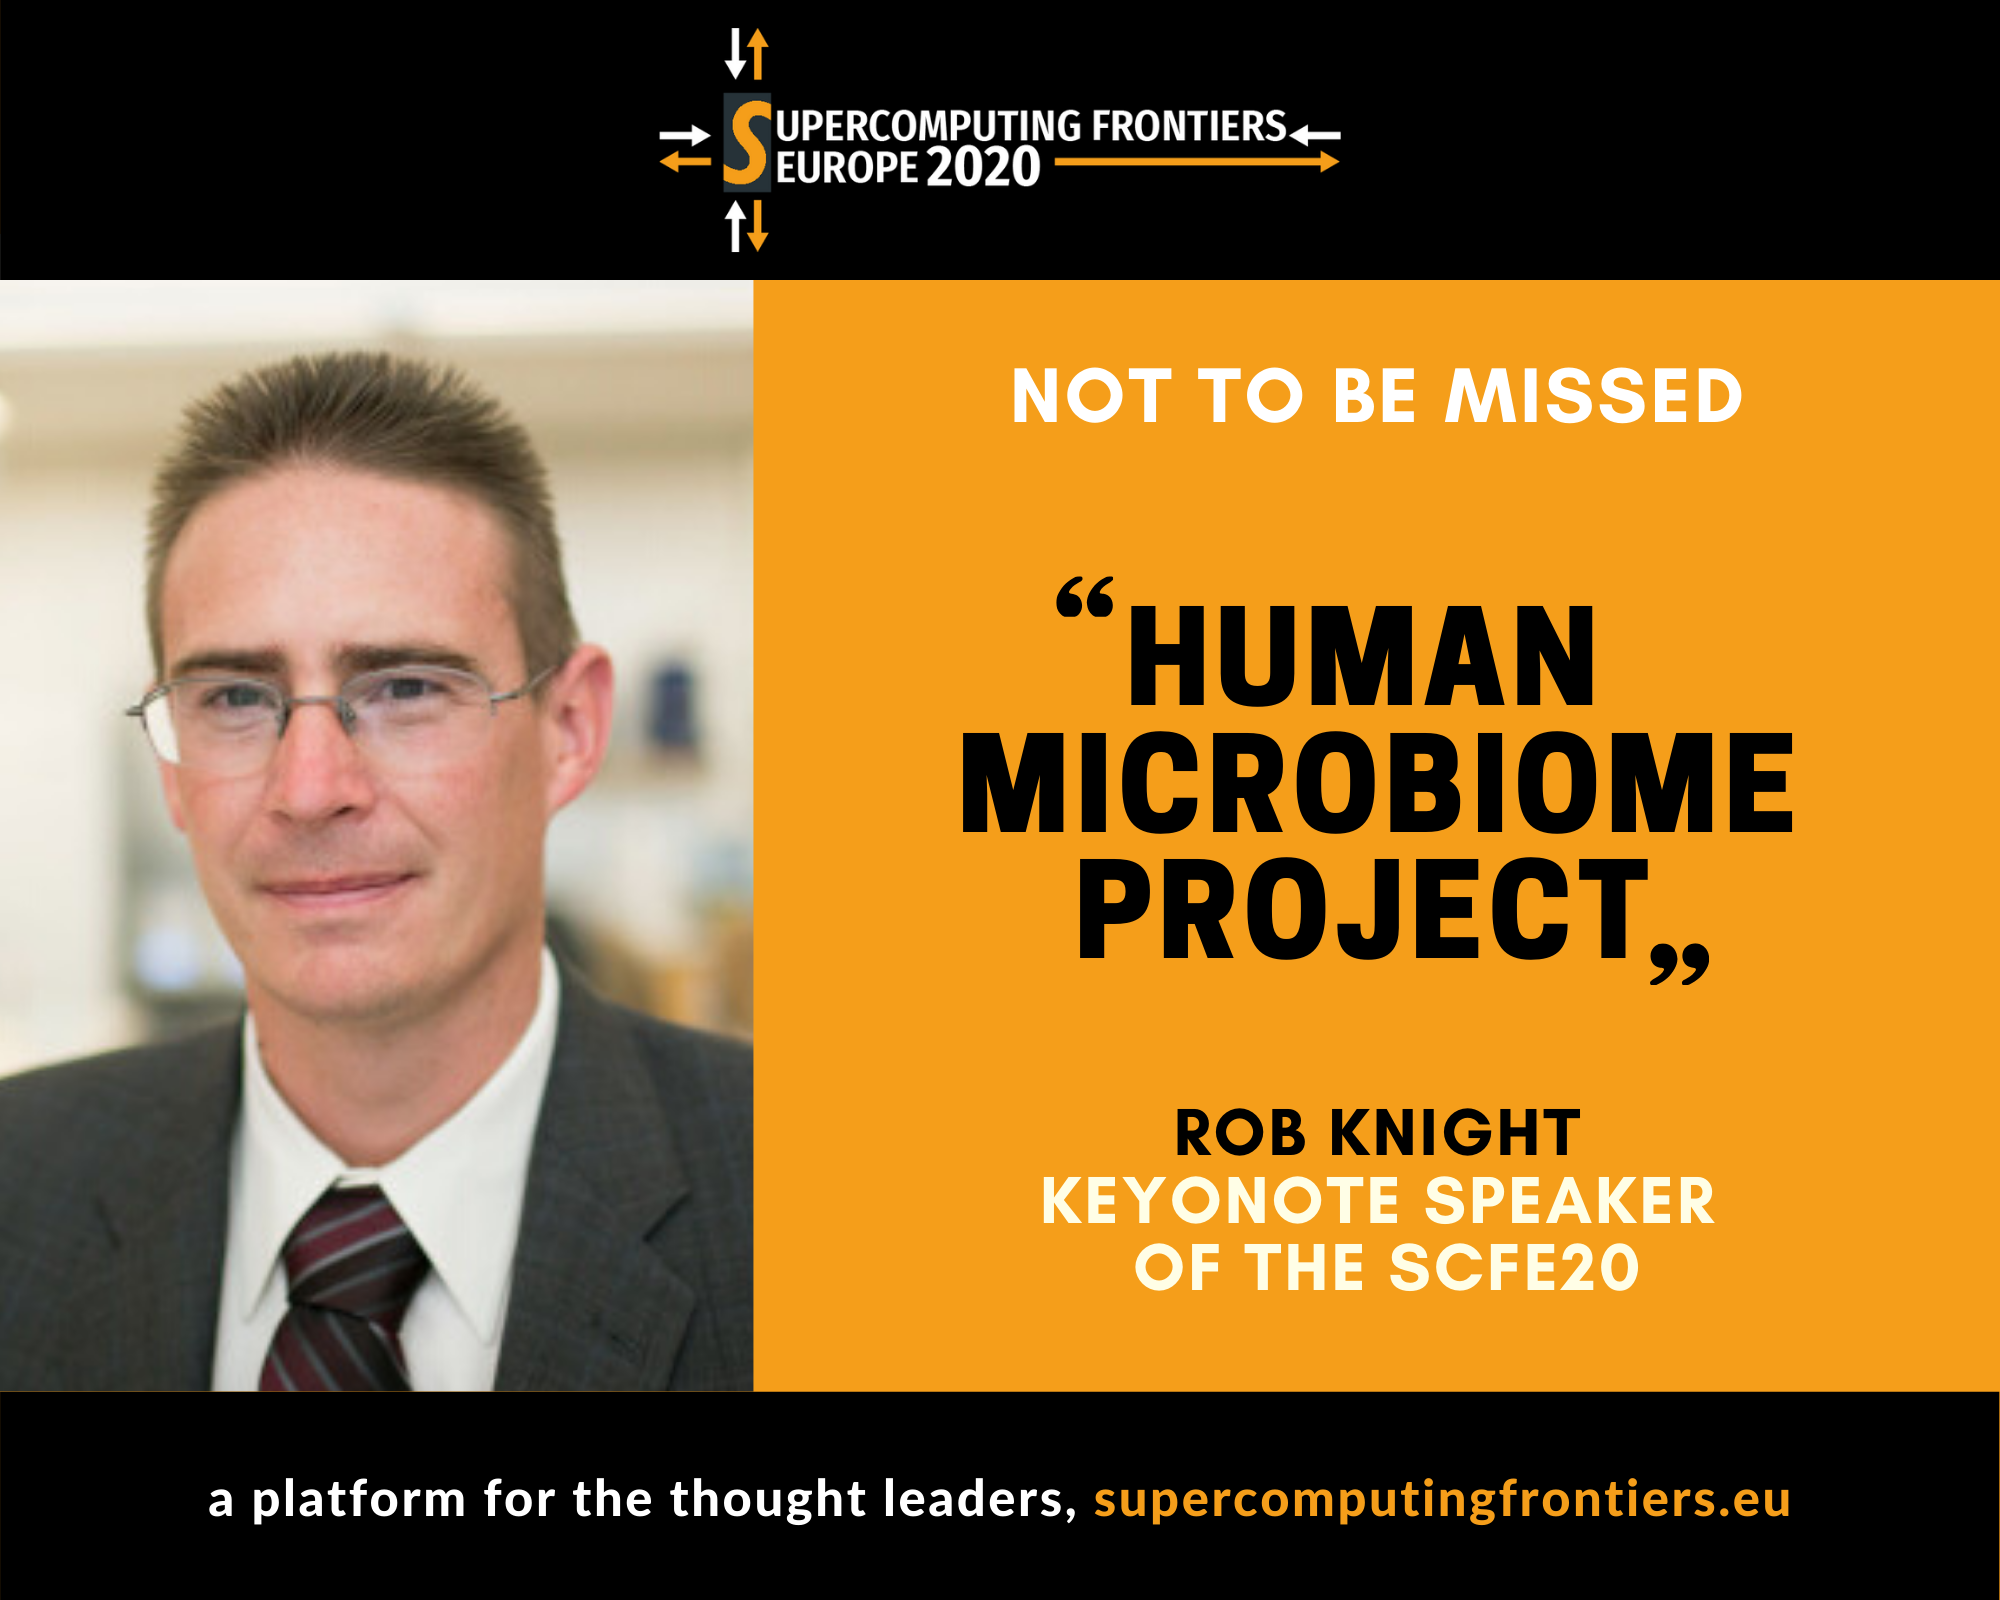 """HUMAN MICROBIOME PROJECT: BIG CHALLENGES, BIG DATA, BIG COMPUTE"" BY ROB KNIGHT, UC SAN DIEGO AT SCFE20"